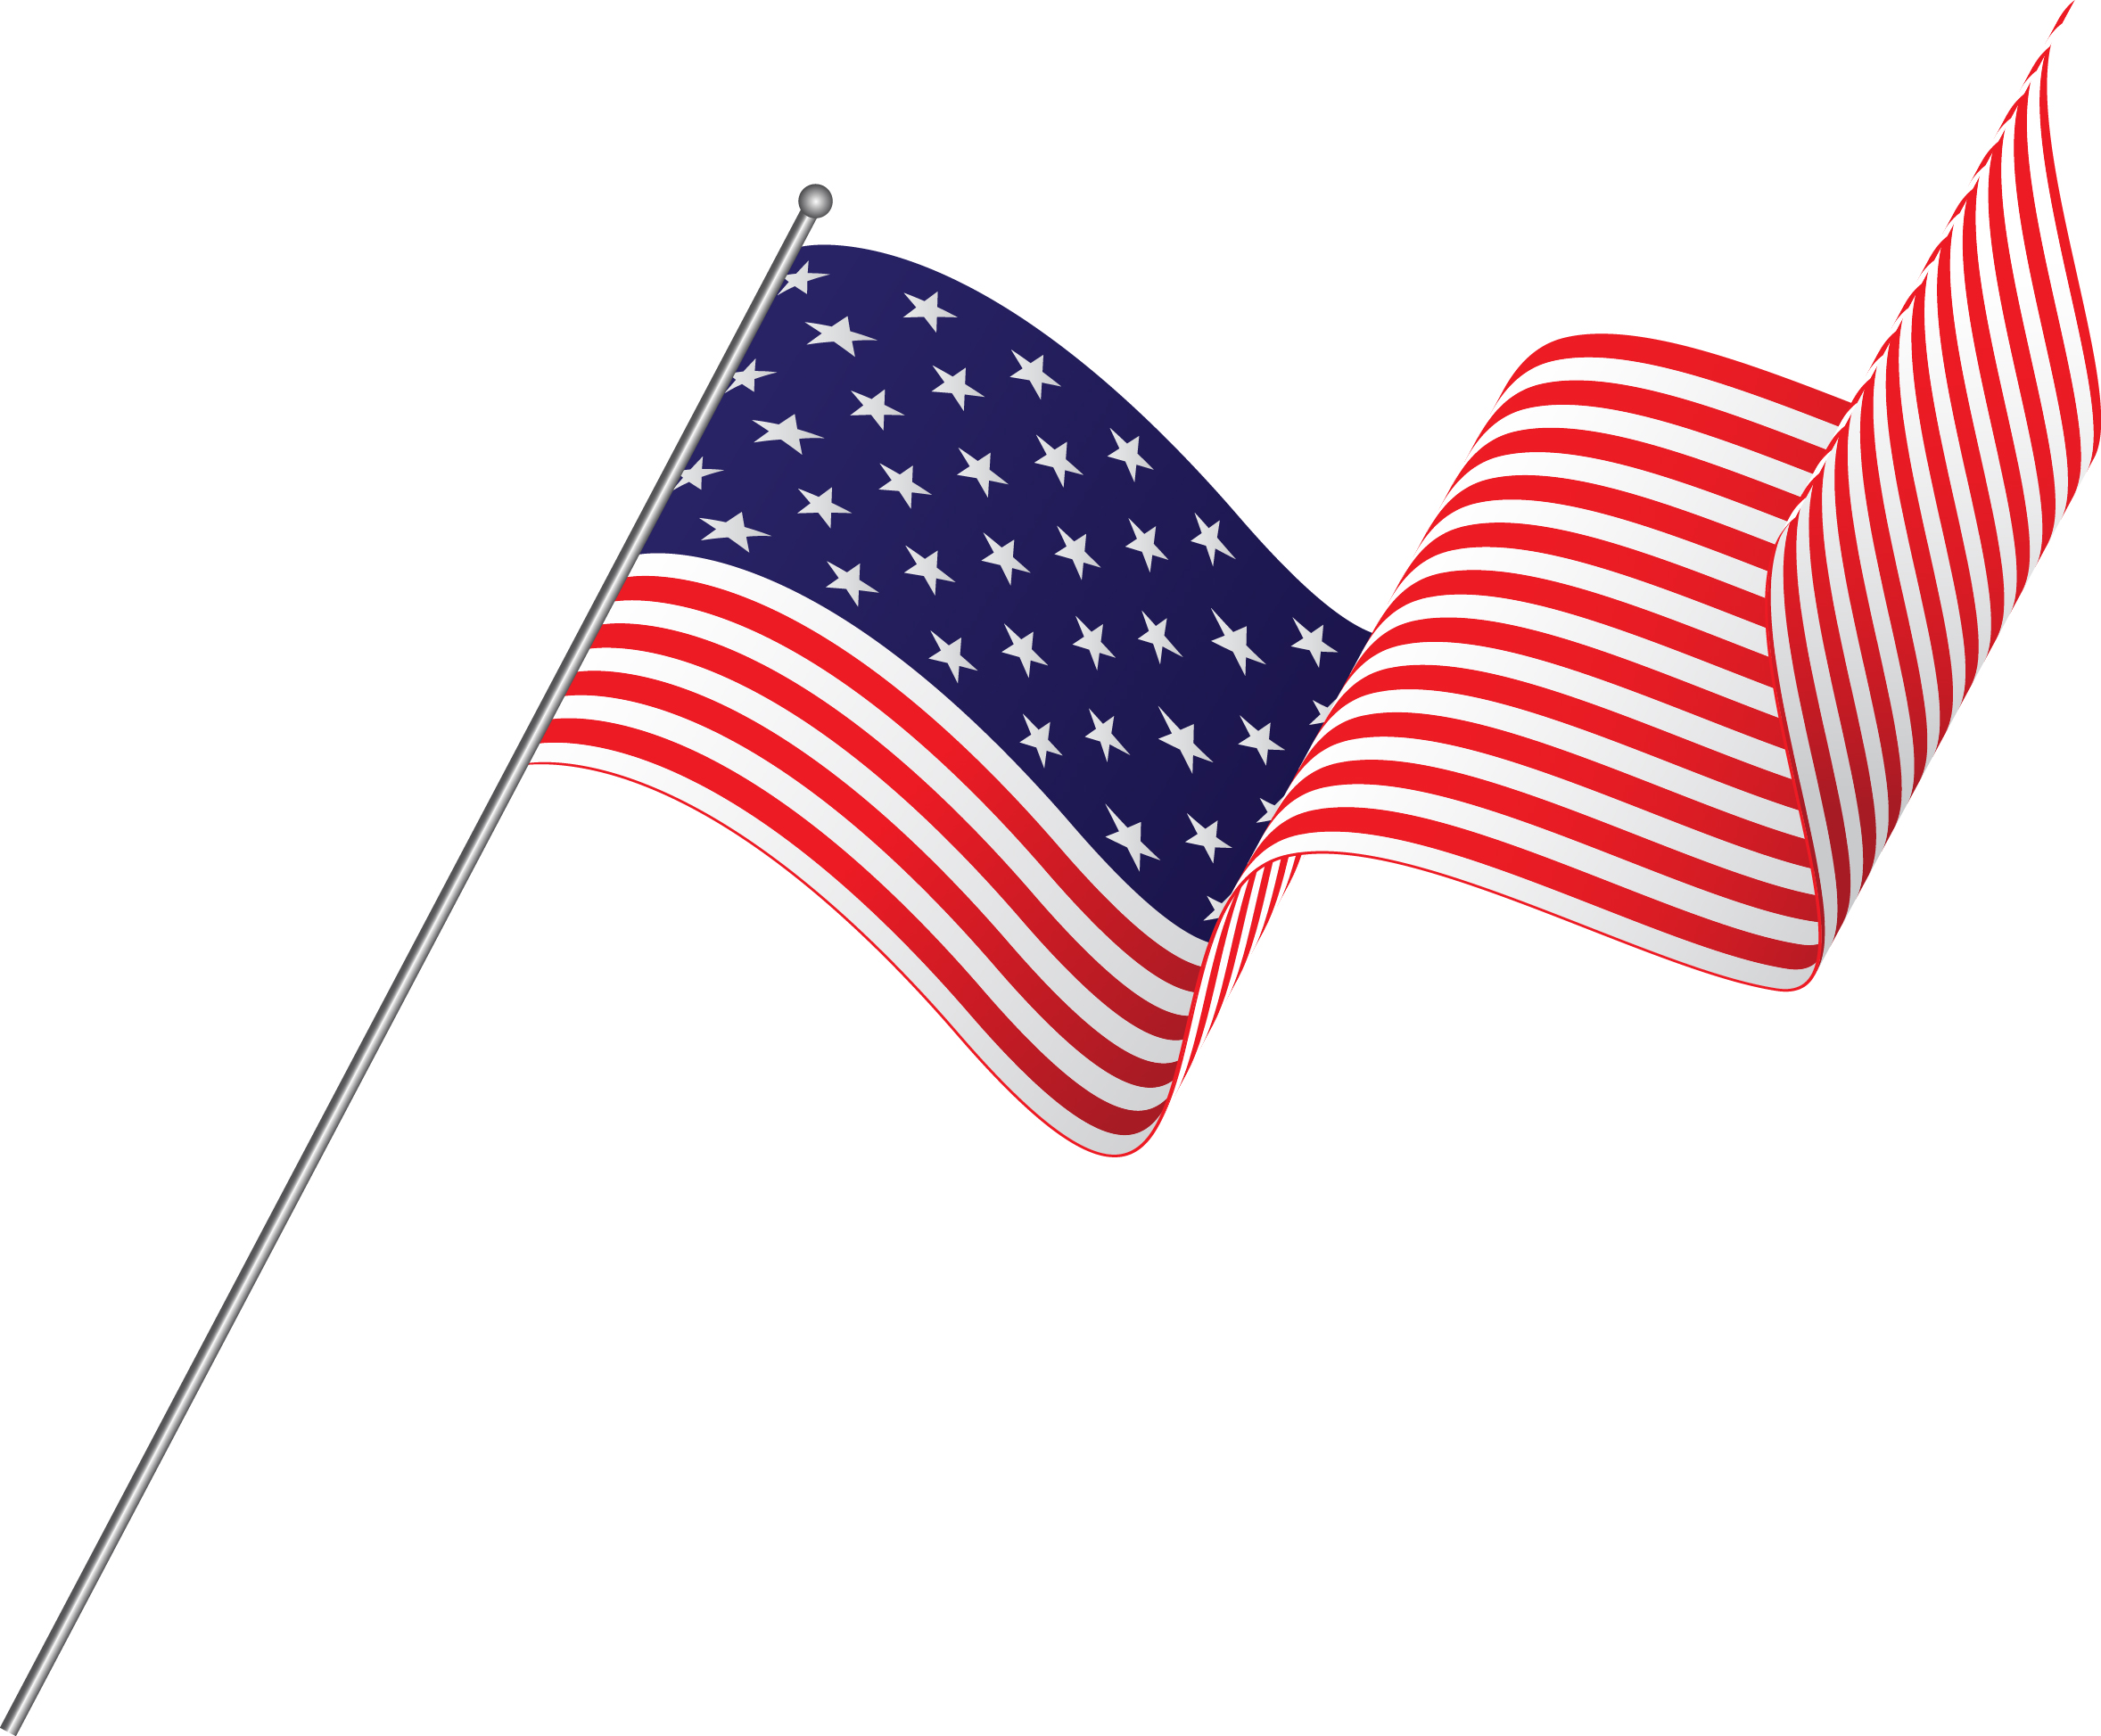 How to create a realistic american flag in illustrator